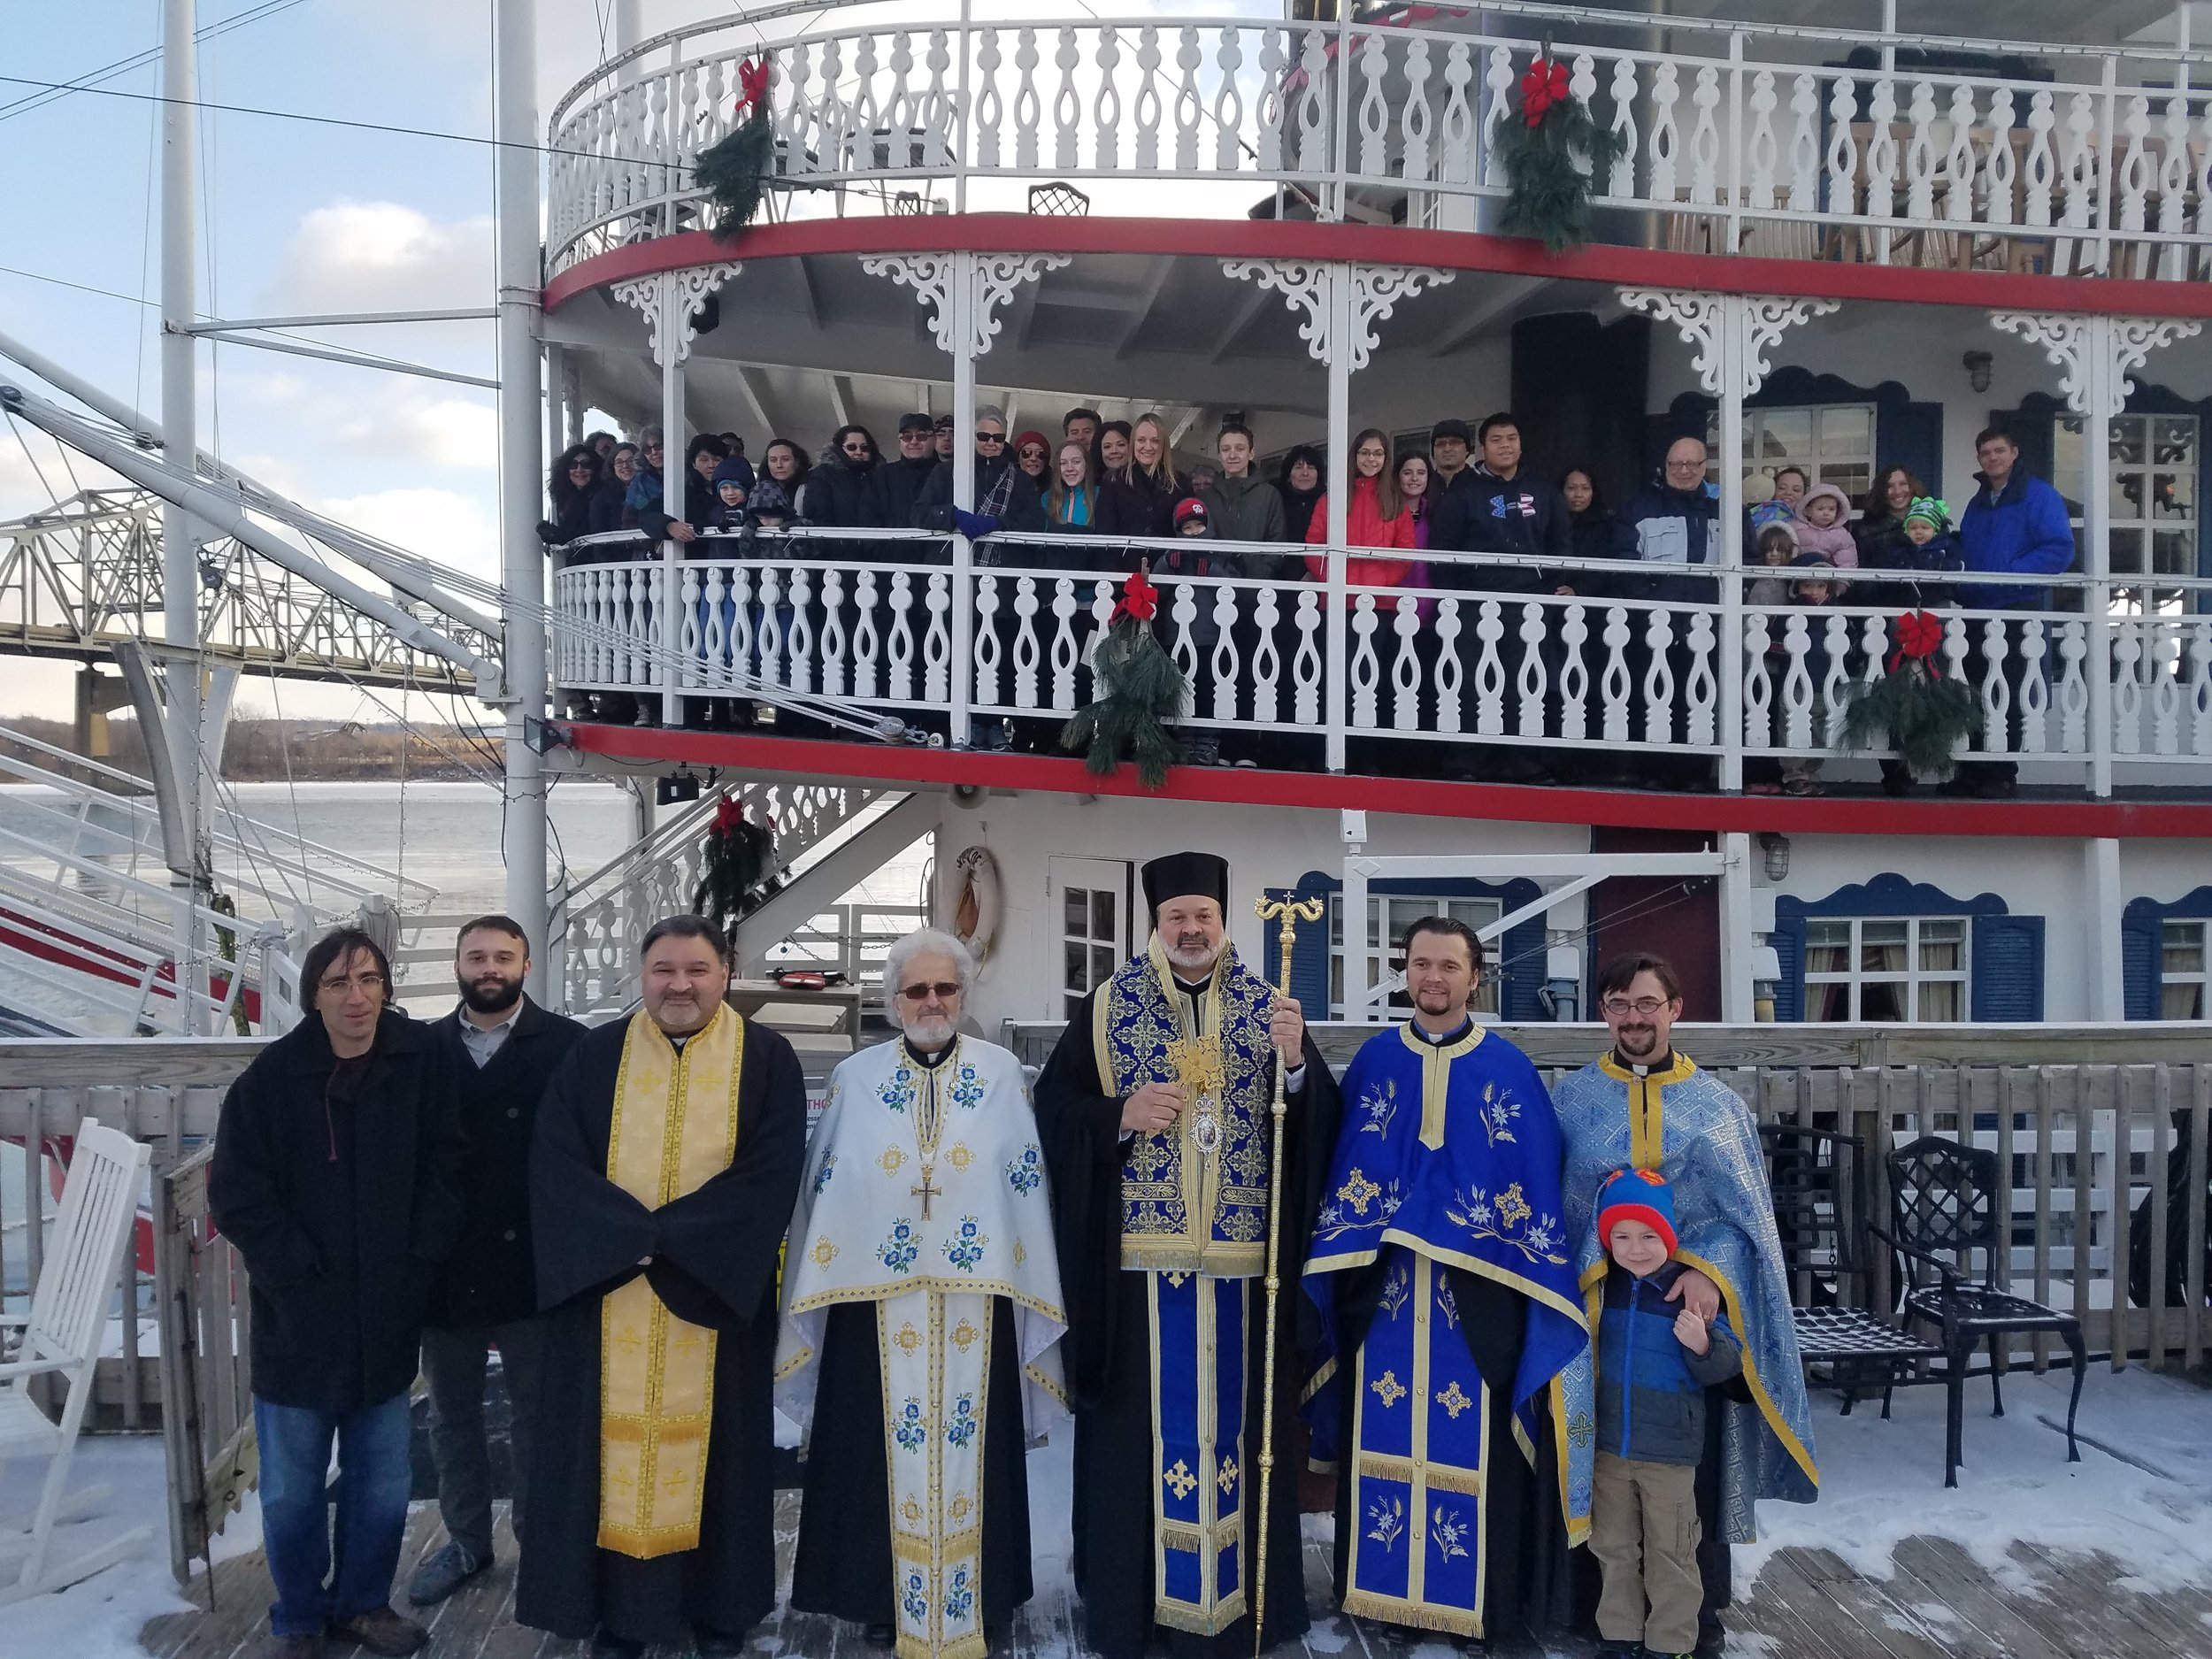 His Grace Bishop Demetrios in Peoria, Illinois for the annual blessing of the waters at the Illinois River.